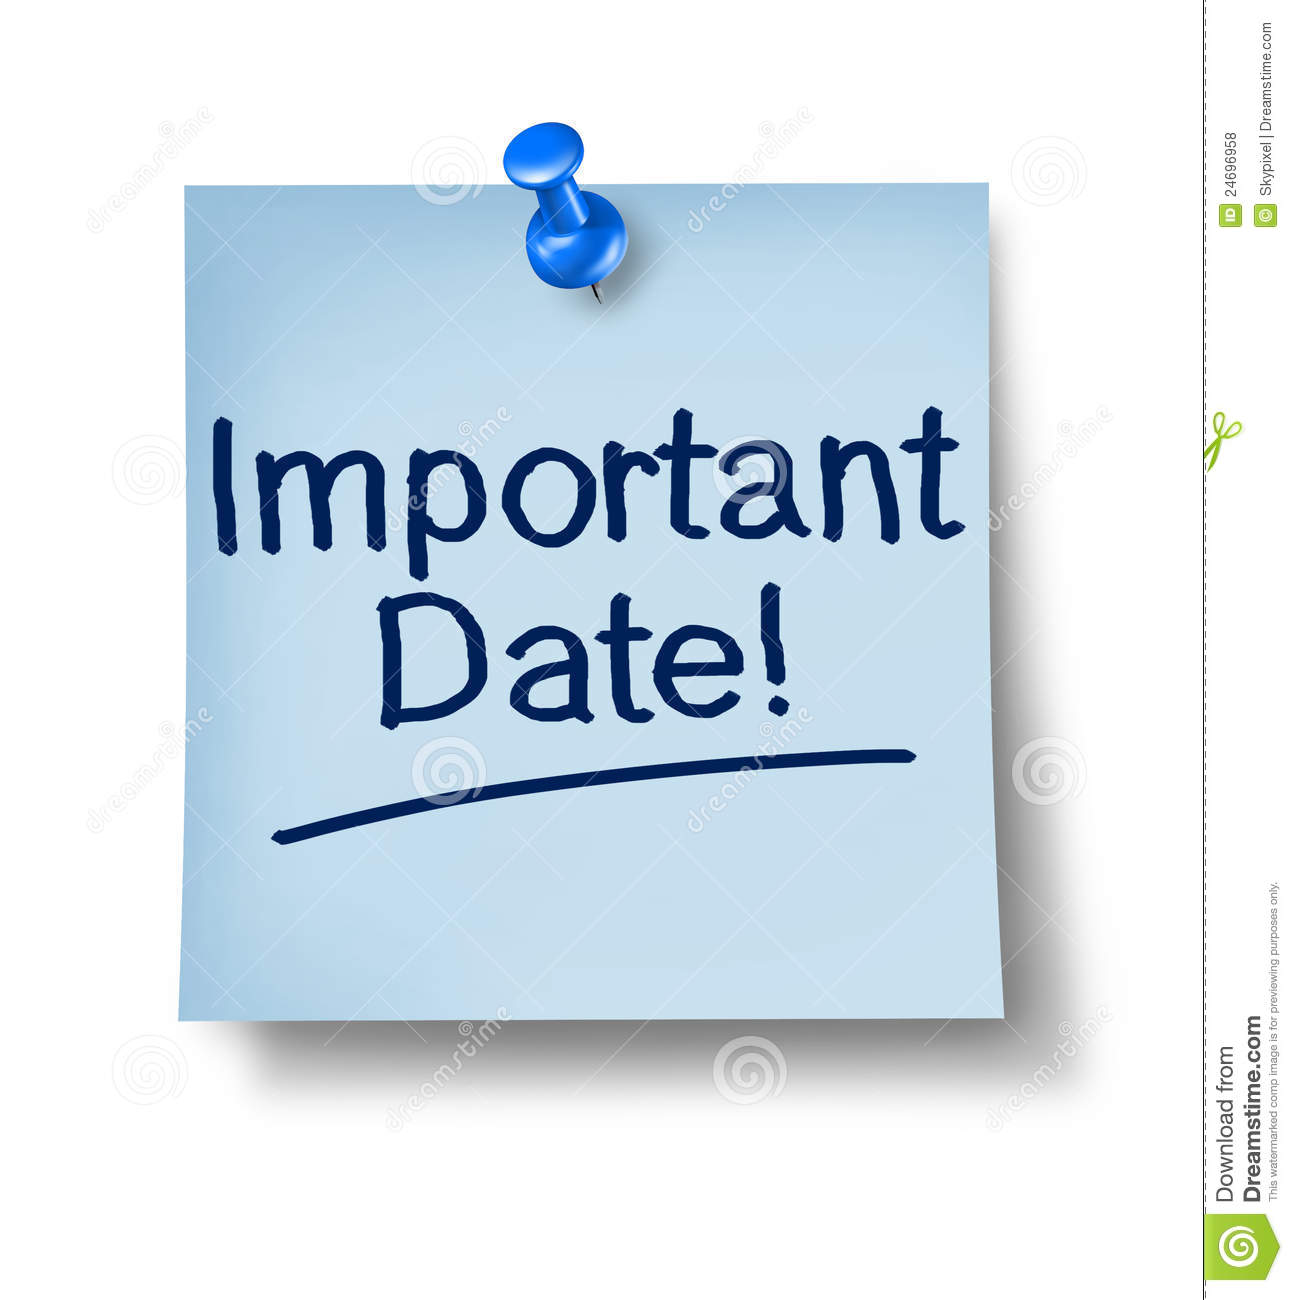 Format a date the way you want - Excel